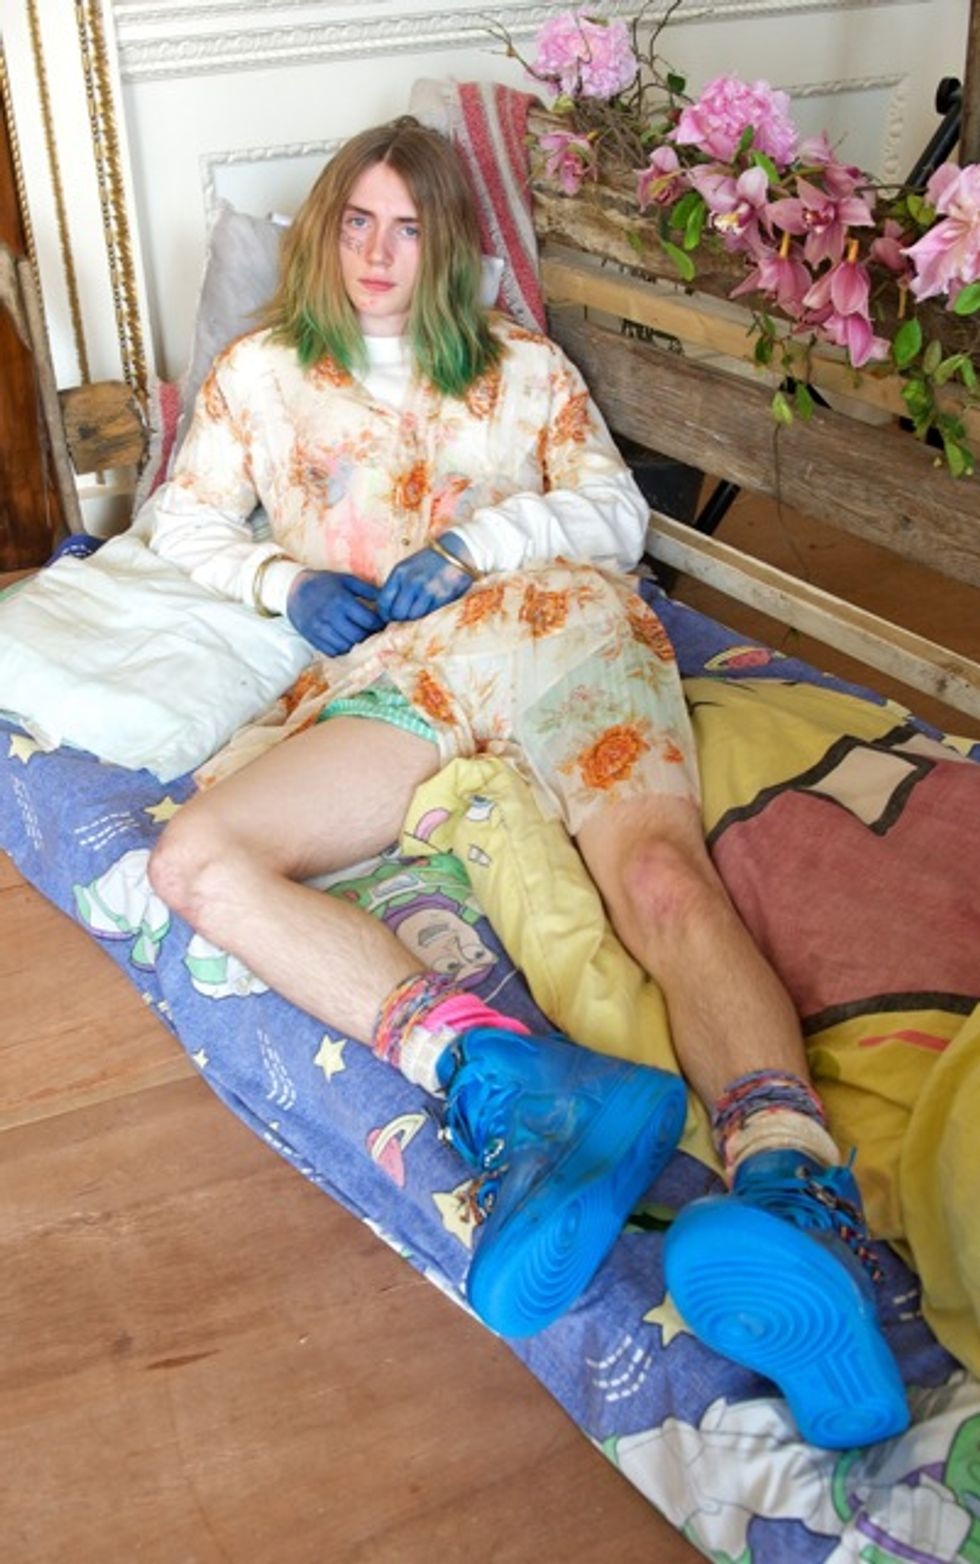 Meadham Kirchhoff Brought the Crazy (and the Pepto Bismol) to Their S/S '13 Menswear Collection